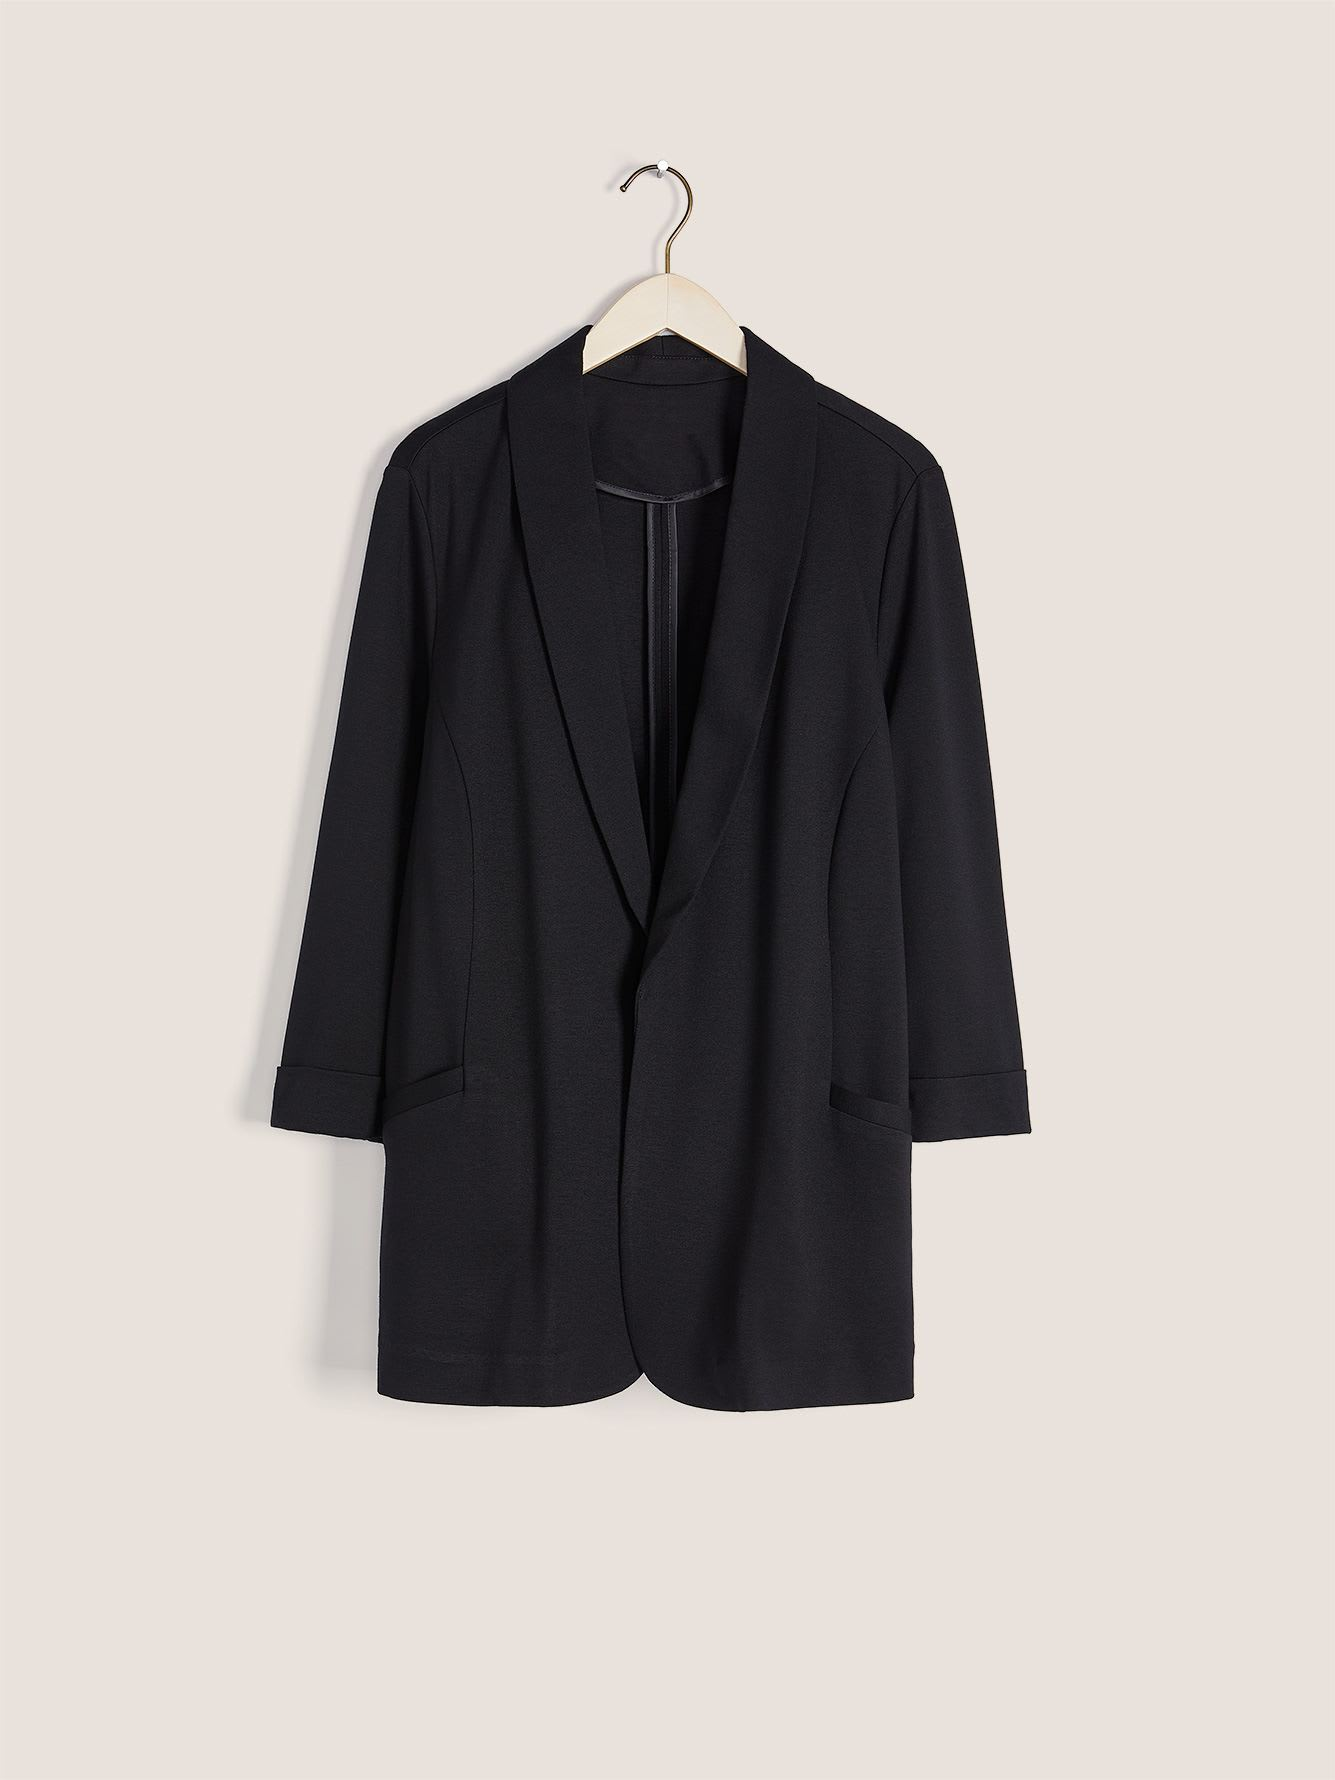 Semi-Fitted Ponte de Roma Blazer - In Every Story